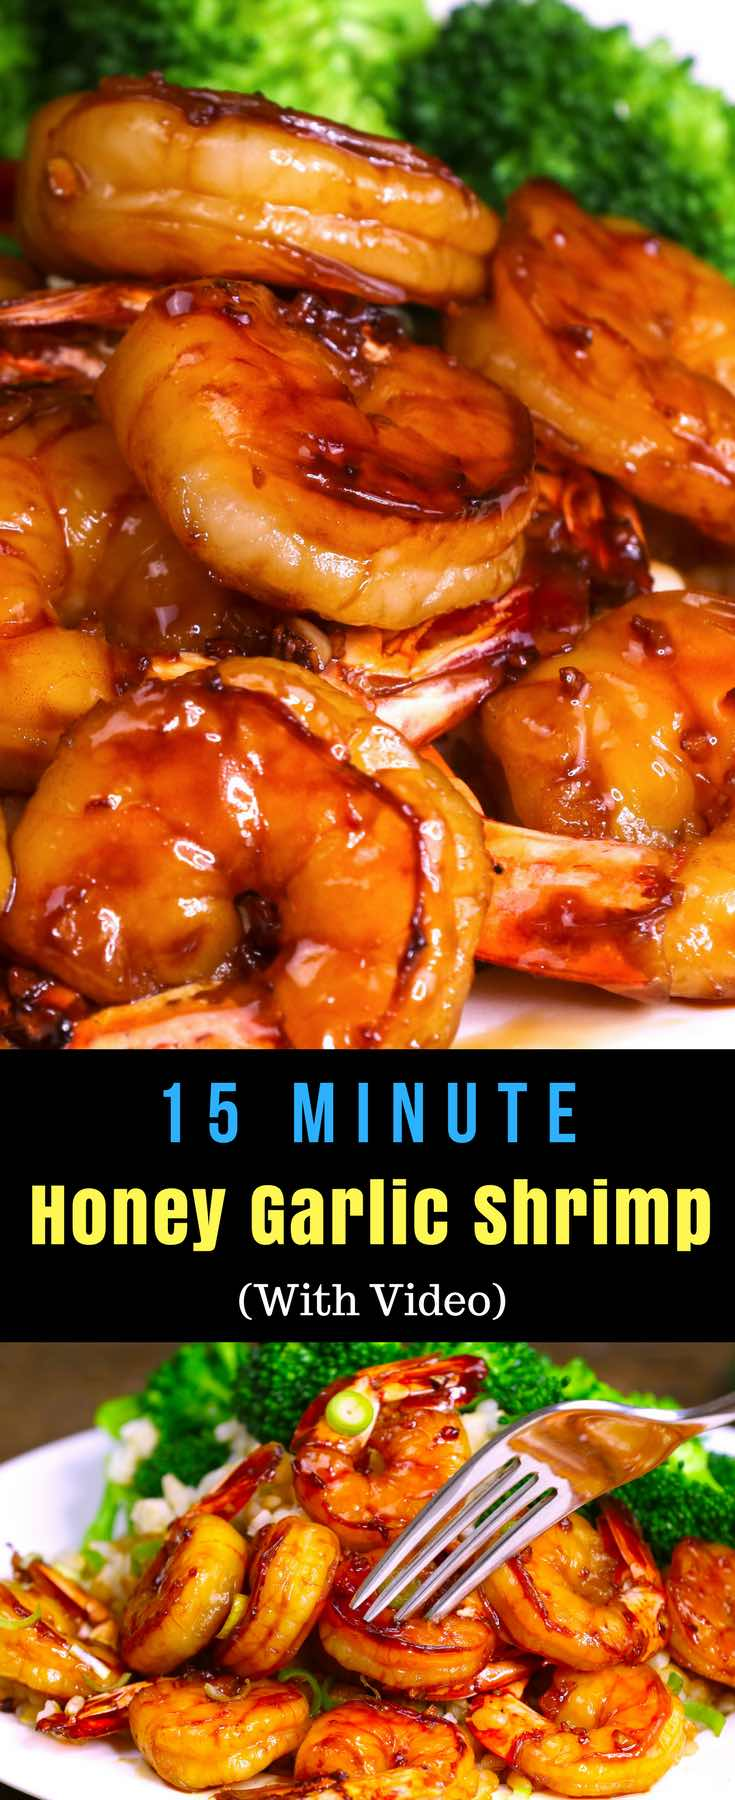 The easiest, most unbelievably delicious Honey Garlic Shrimp. And it'll be on your dinner table in just 15 minutes. Succulent shrimp marinated in honey, garlic, soy sauce and ginger mix, seared in frying pan. Ready in 15 minutes! Quick and easy dinner recipe. Video recipe. | Tipbuzz.com #EasyShrimp #ShrimpRecipe